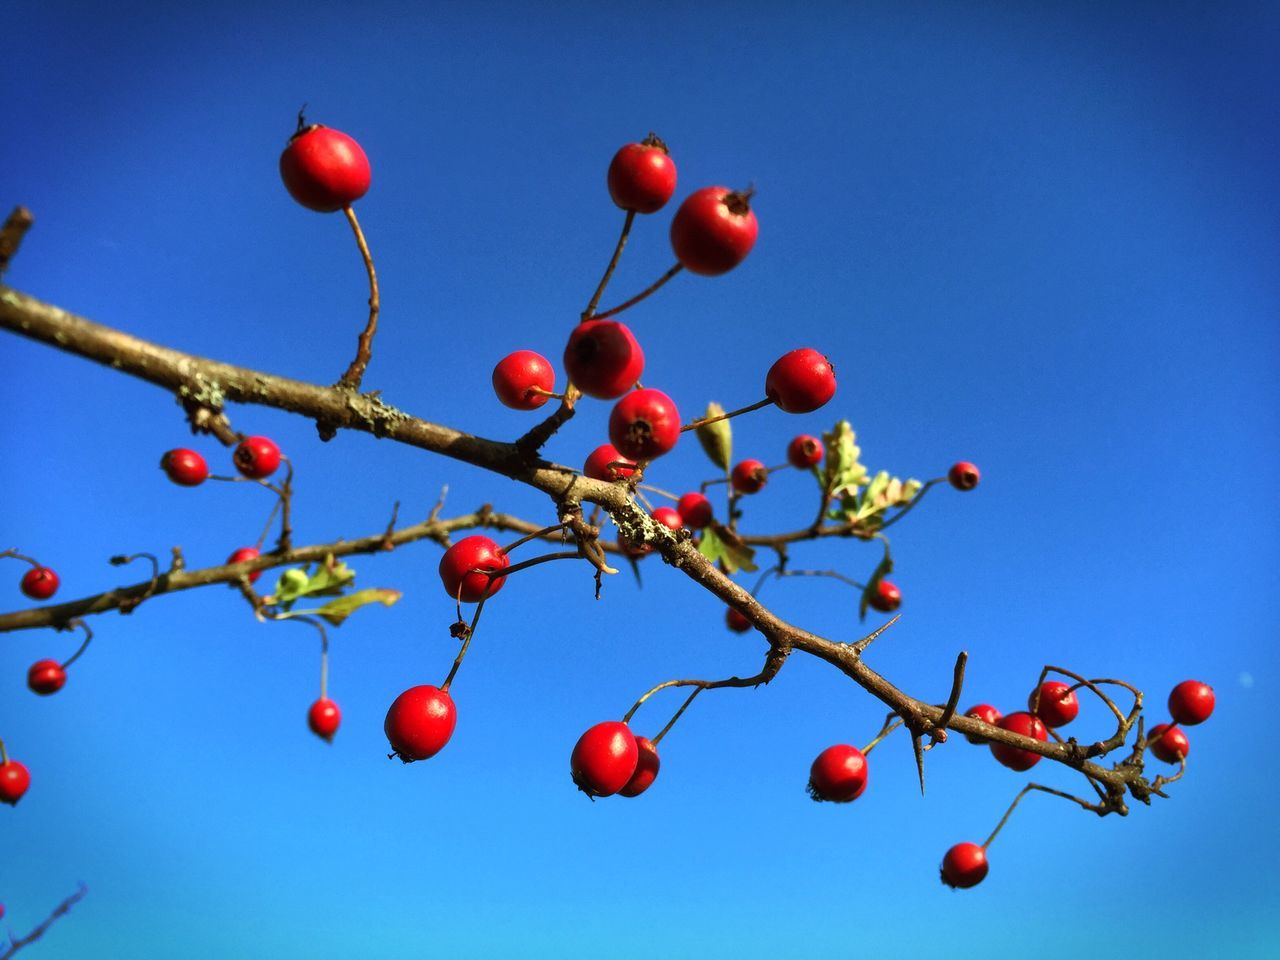 Low Angle View Of Cherries Growing On Tree Against Clear Blue Sky